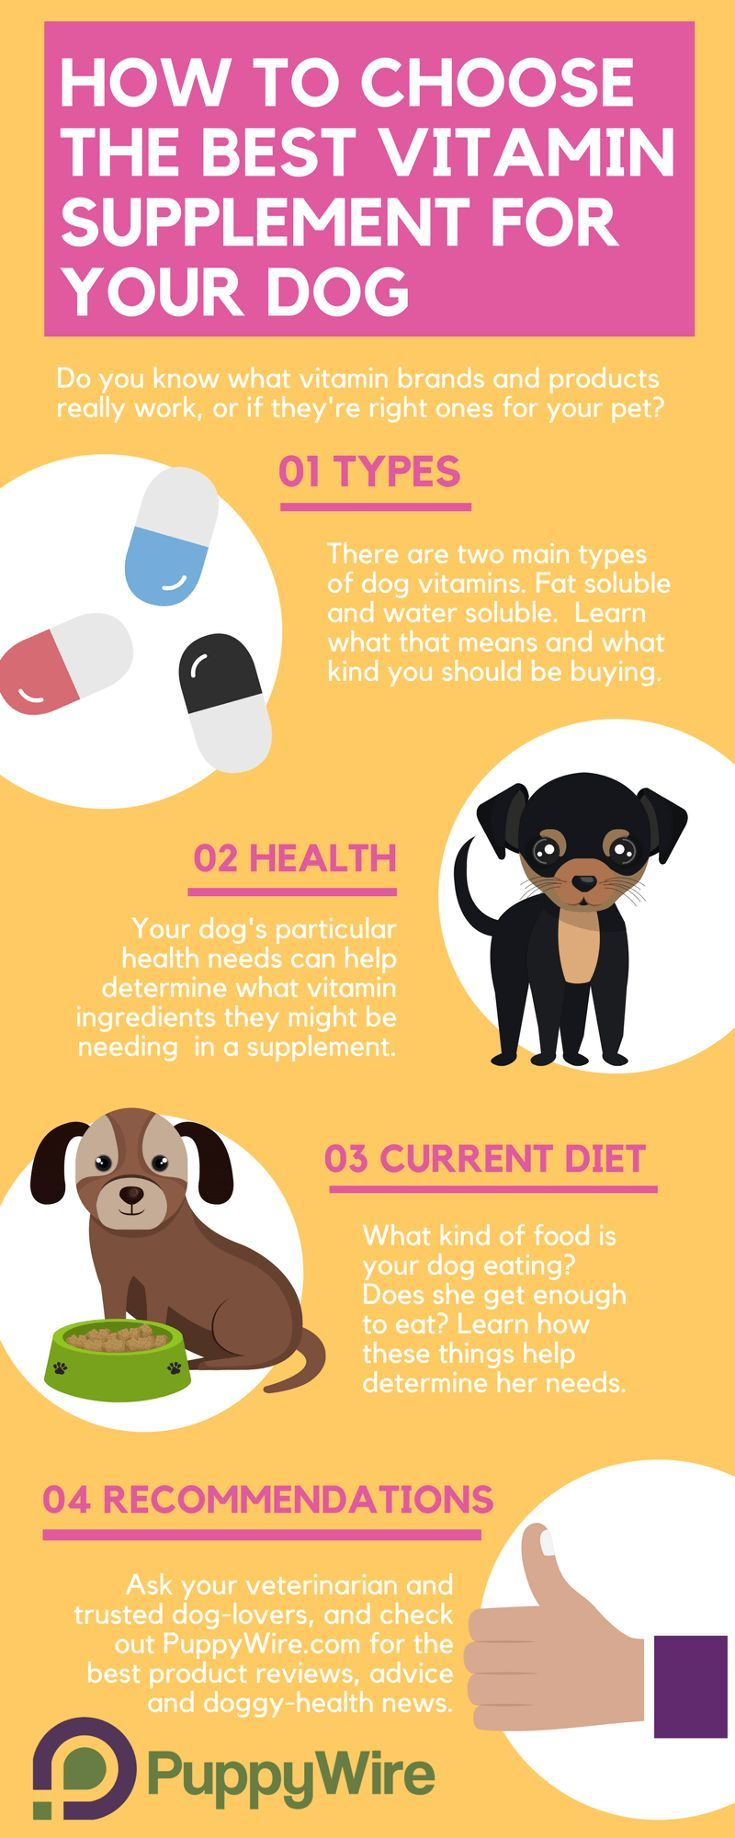 Choosing The Best Multivitamin For Dogs Can Be Challenging We Cover The Most Important Aspects To Help Regardless I Dog Diet Coconut Oil For Dogs Dog Vitamins